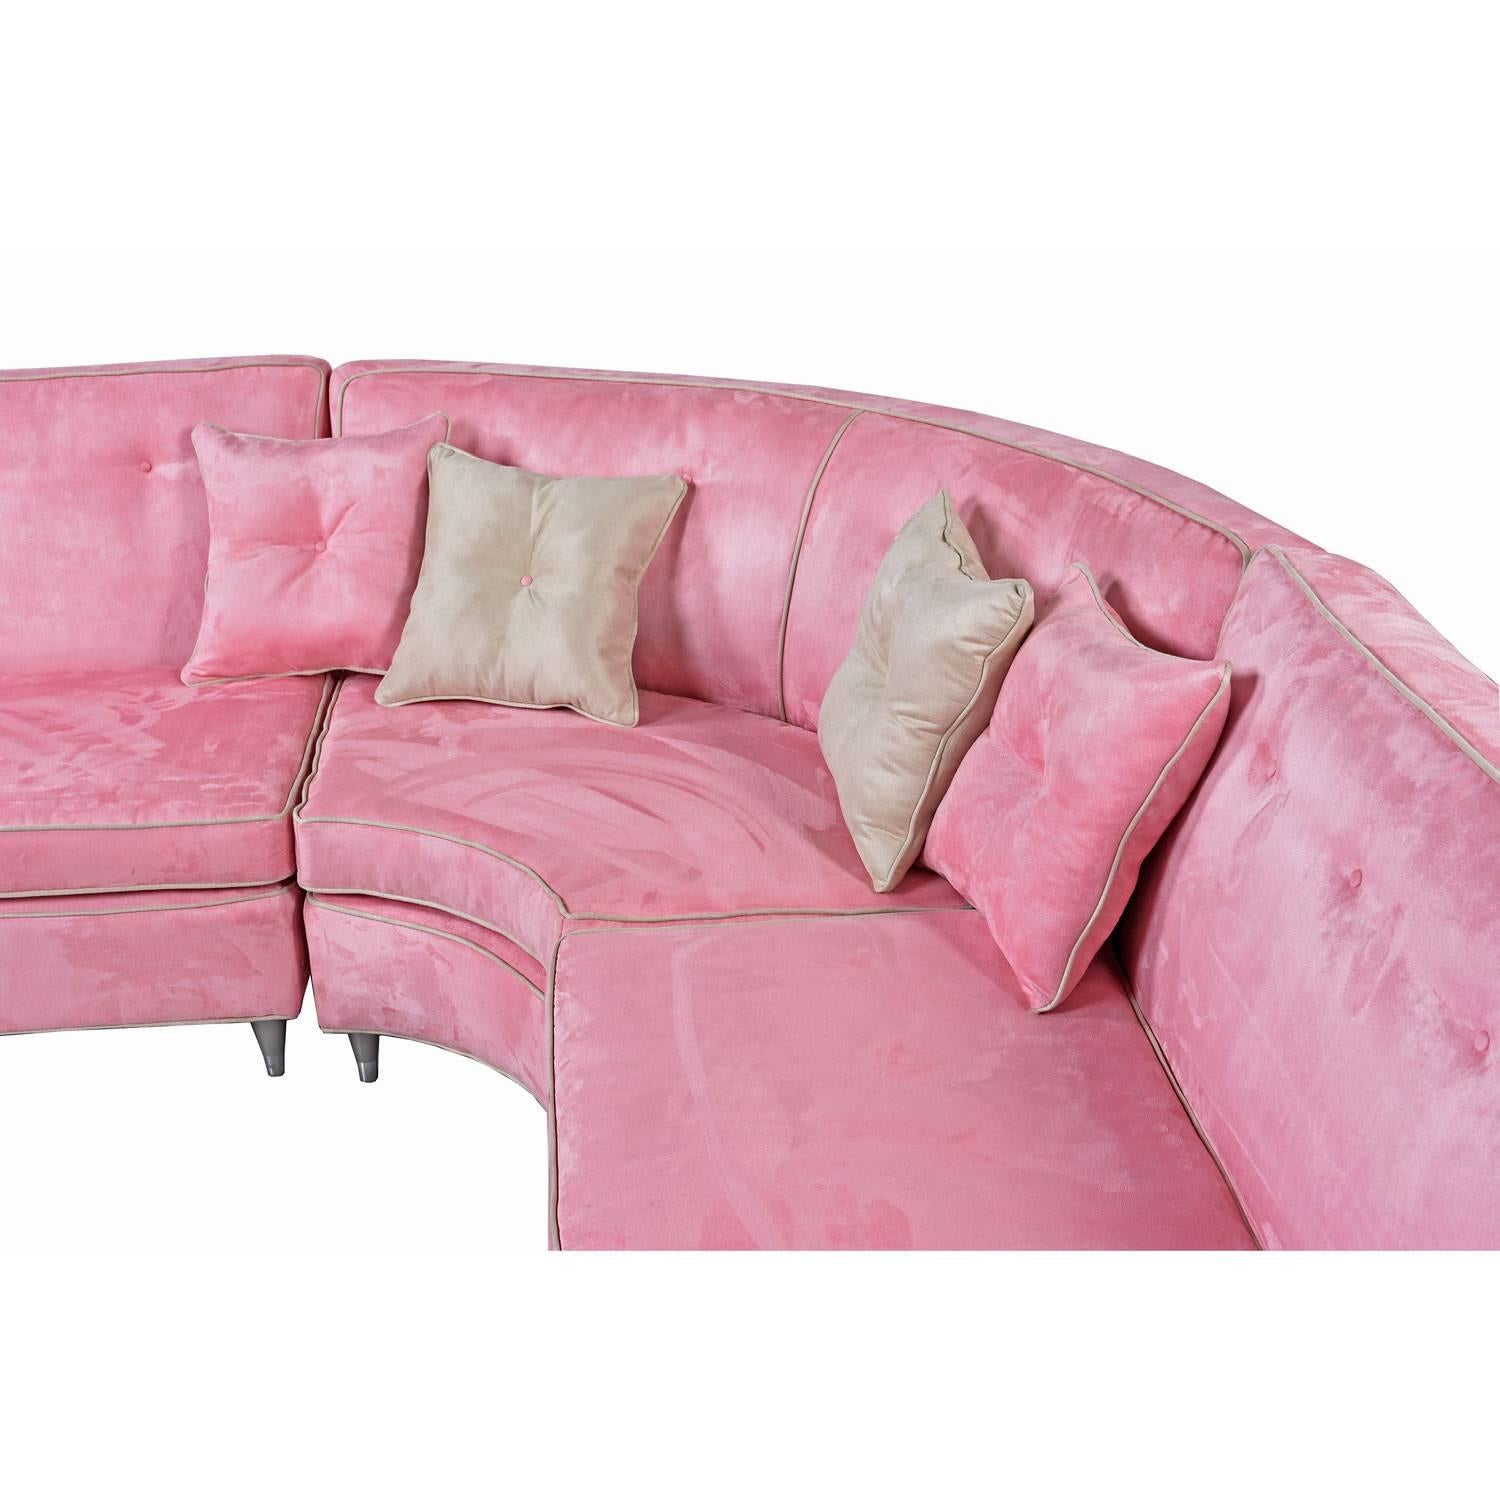 Hollywood Regency Mid Century Modern Pink Microsuede Sectional Sofa, Circa  1960s For Sale